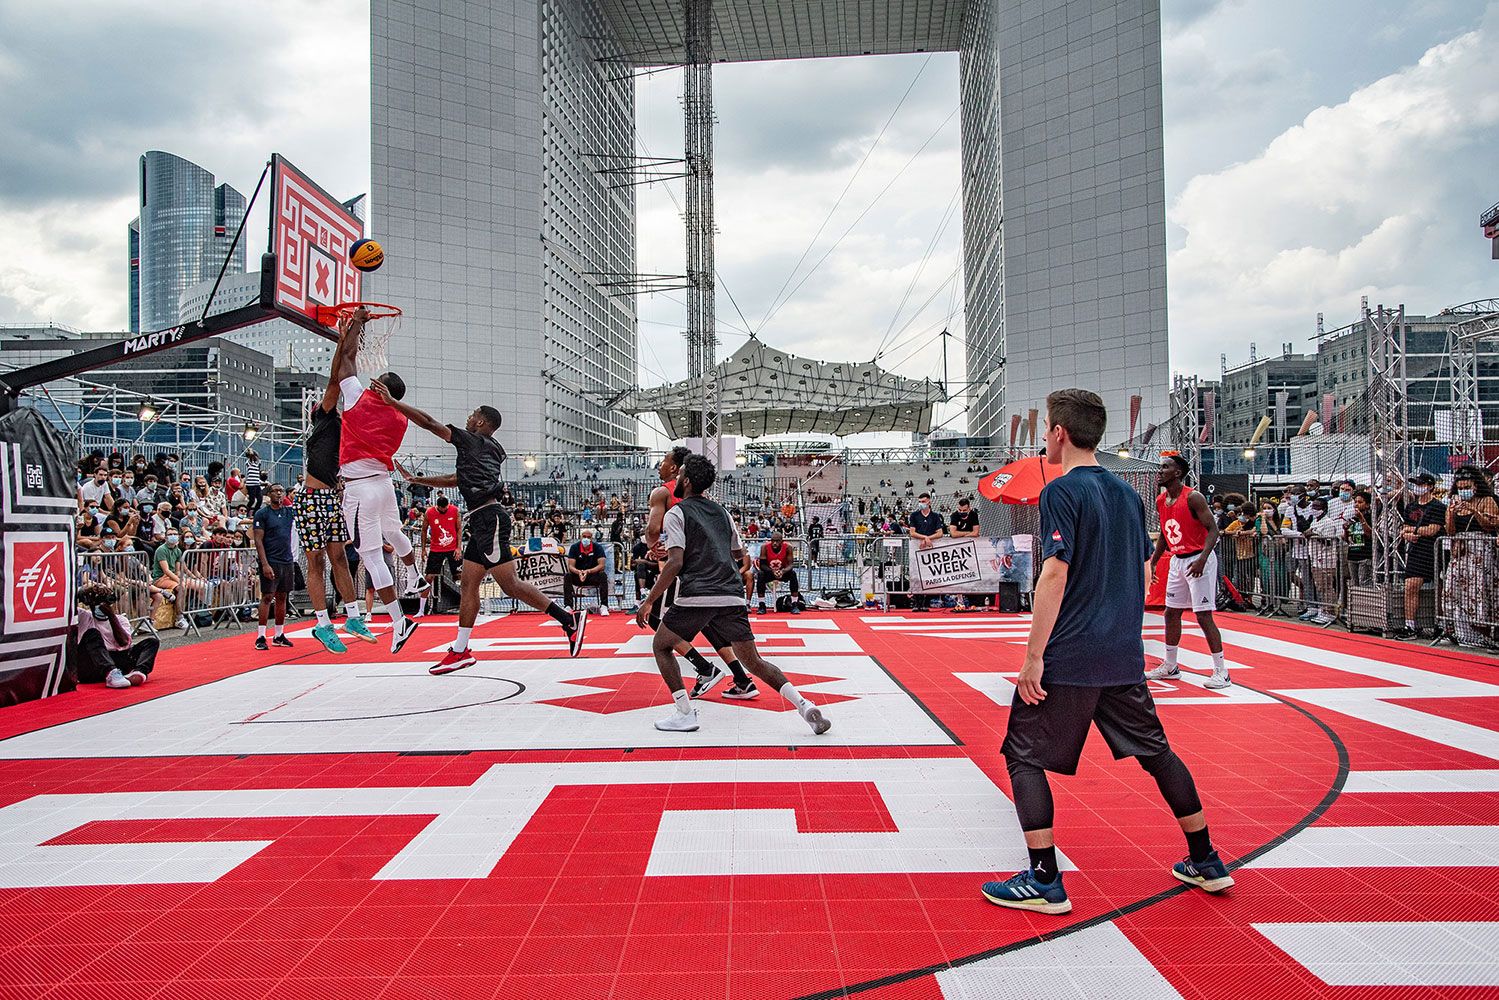 Urban Week Festival Paris La Defense, basketball, September 18, 2020, France, (Nos Dren).